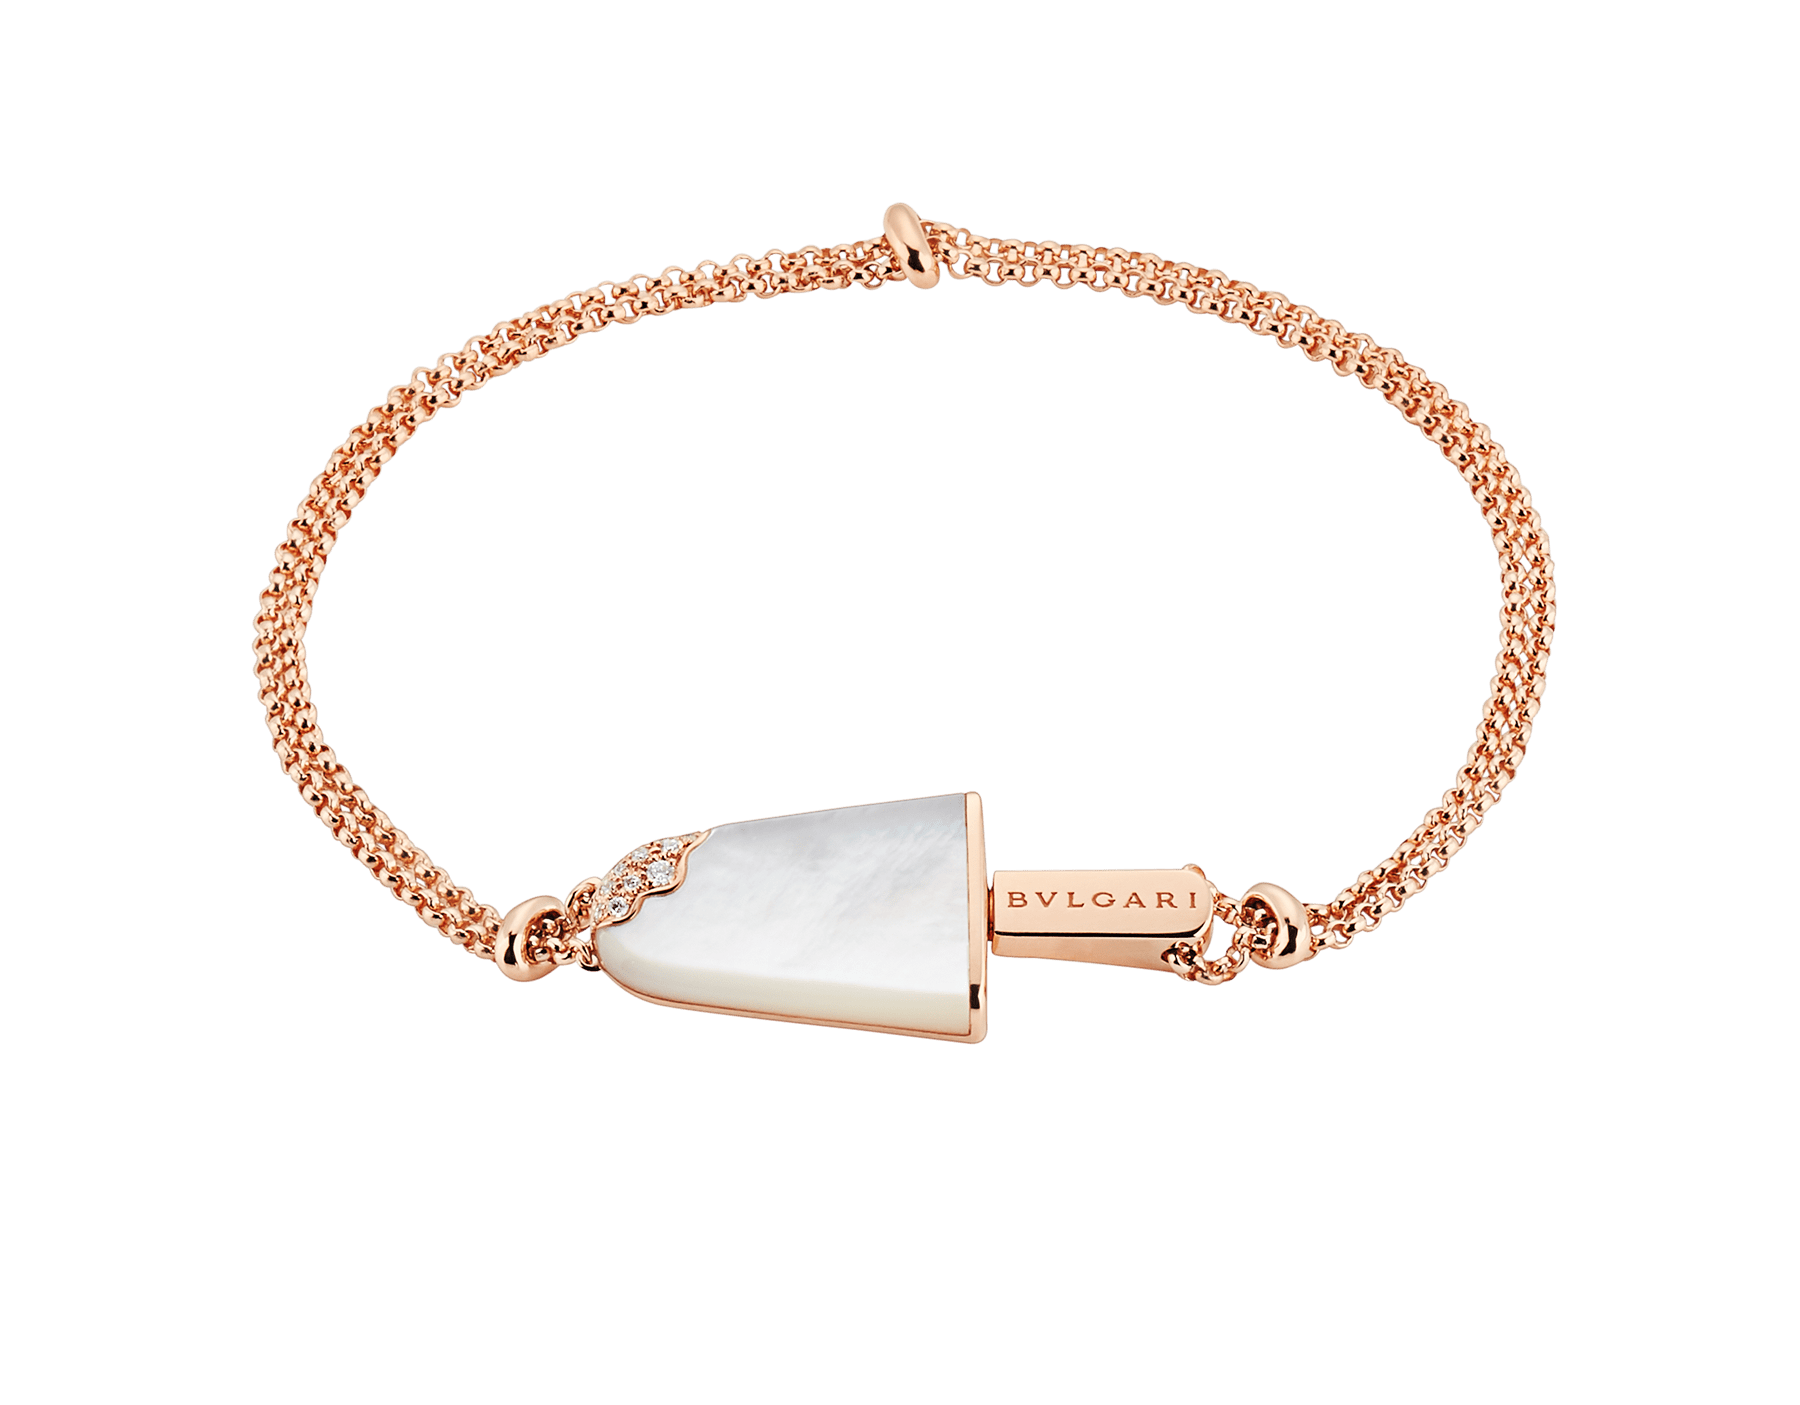 BVLGARI BVLGARI Gelati 18 kt rose gold soft bracelet set with mother-of-pearl and pavé diamonds BR858011 image 1